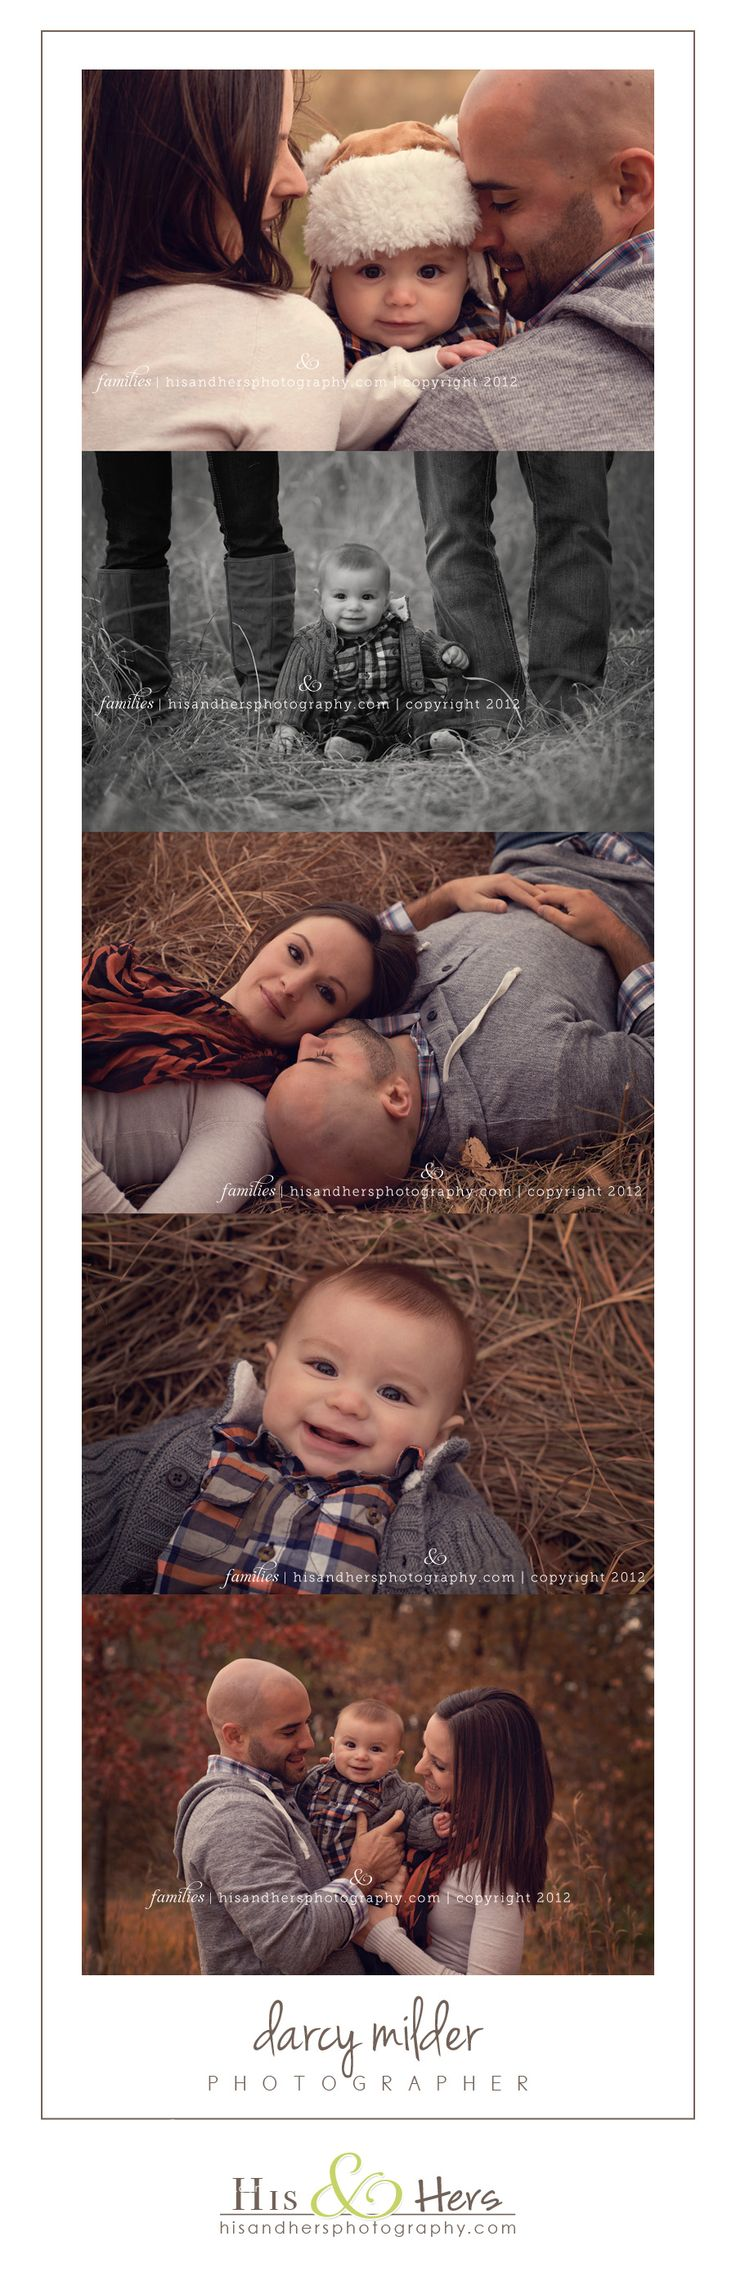 6 month old baby / family portraits | Iowa photographer, Darcy Milder | His  Hers